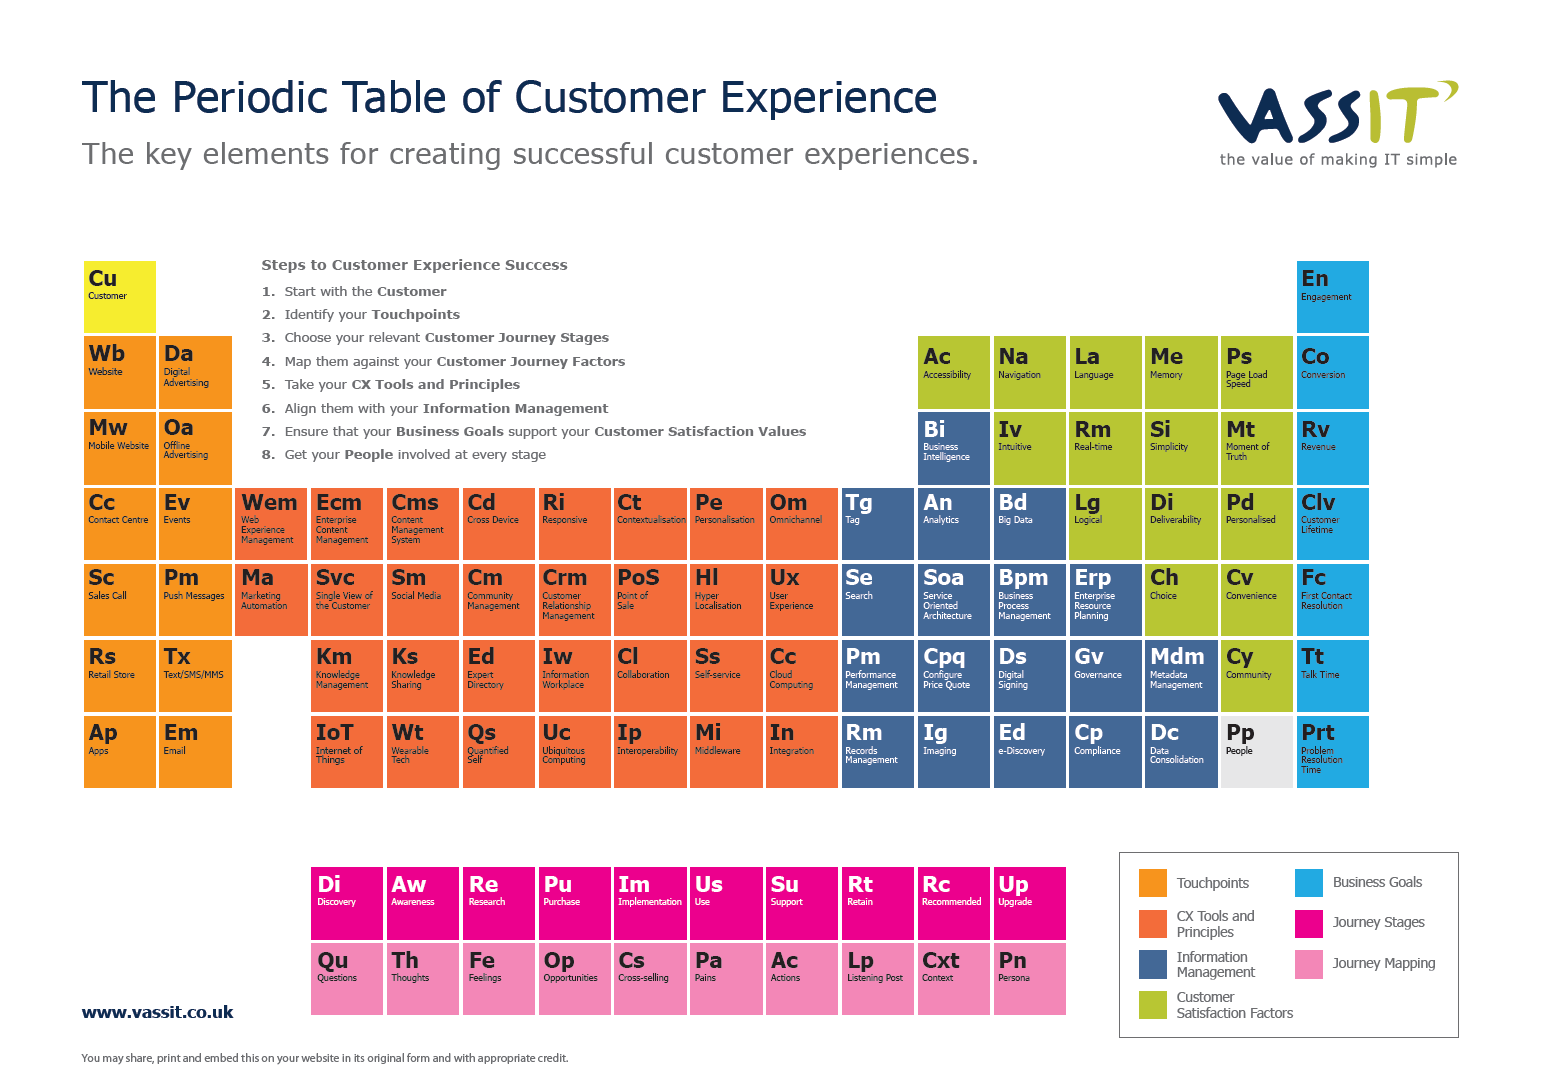 The Periodic Table of Customer Experience